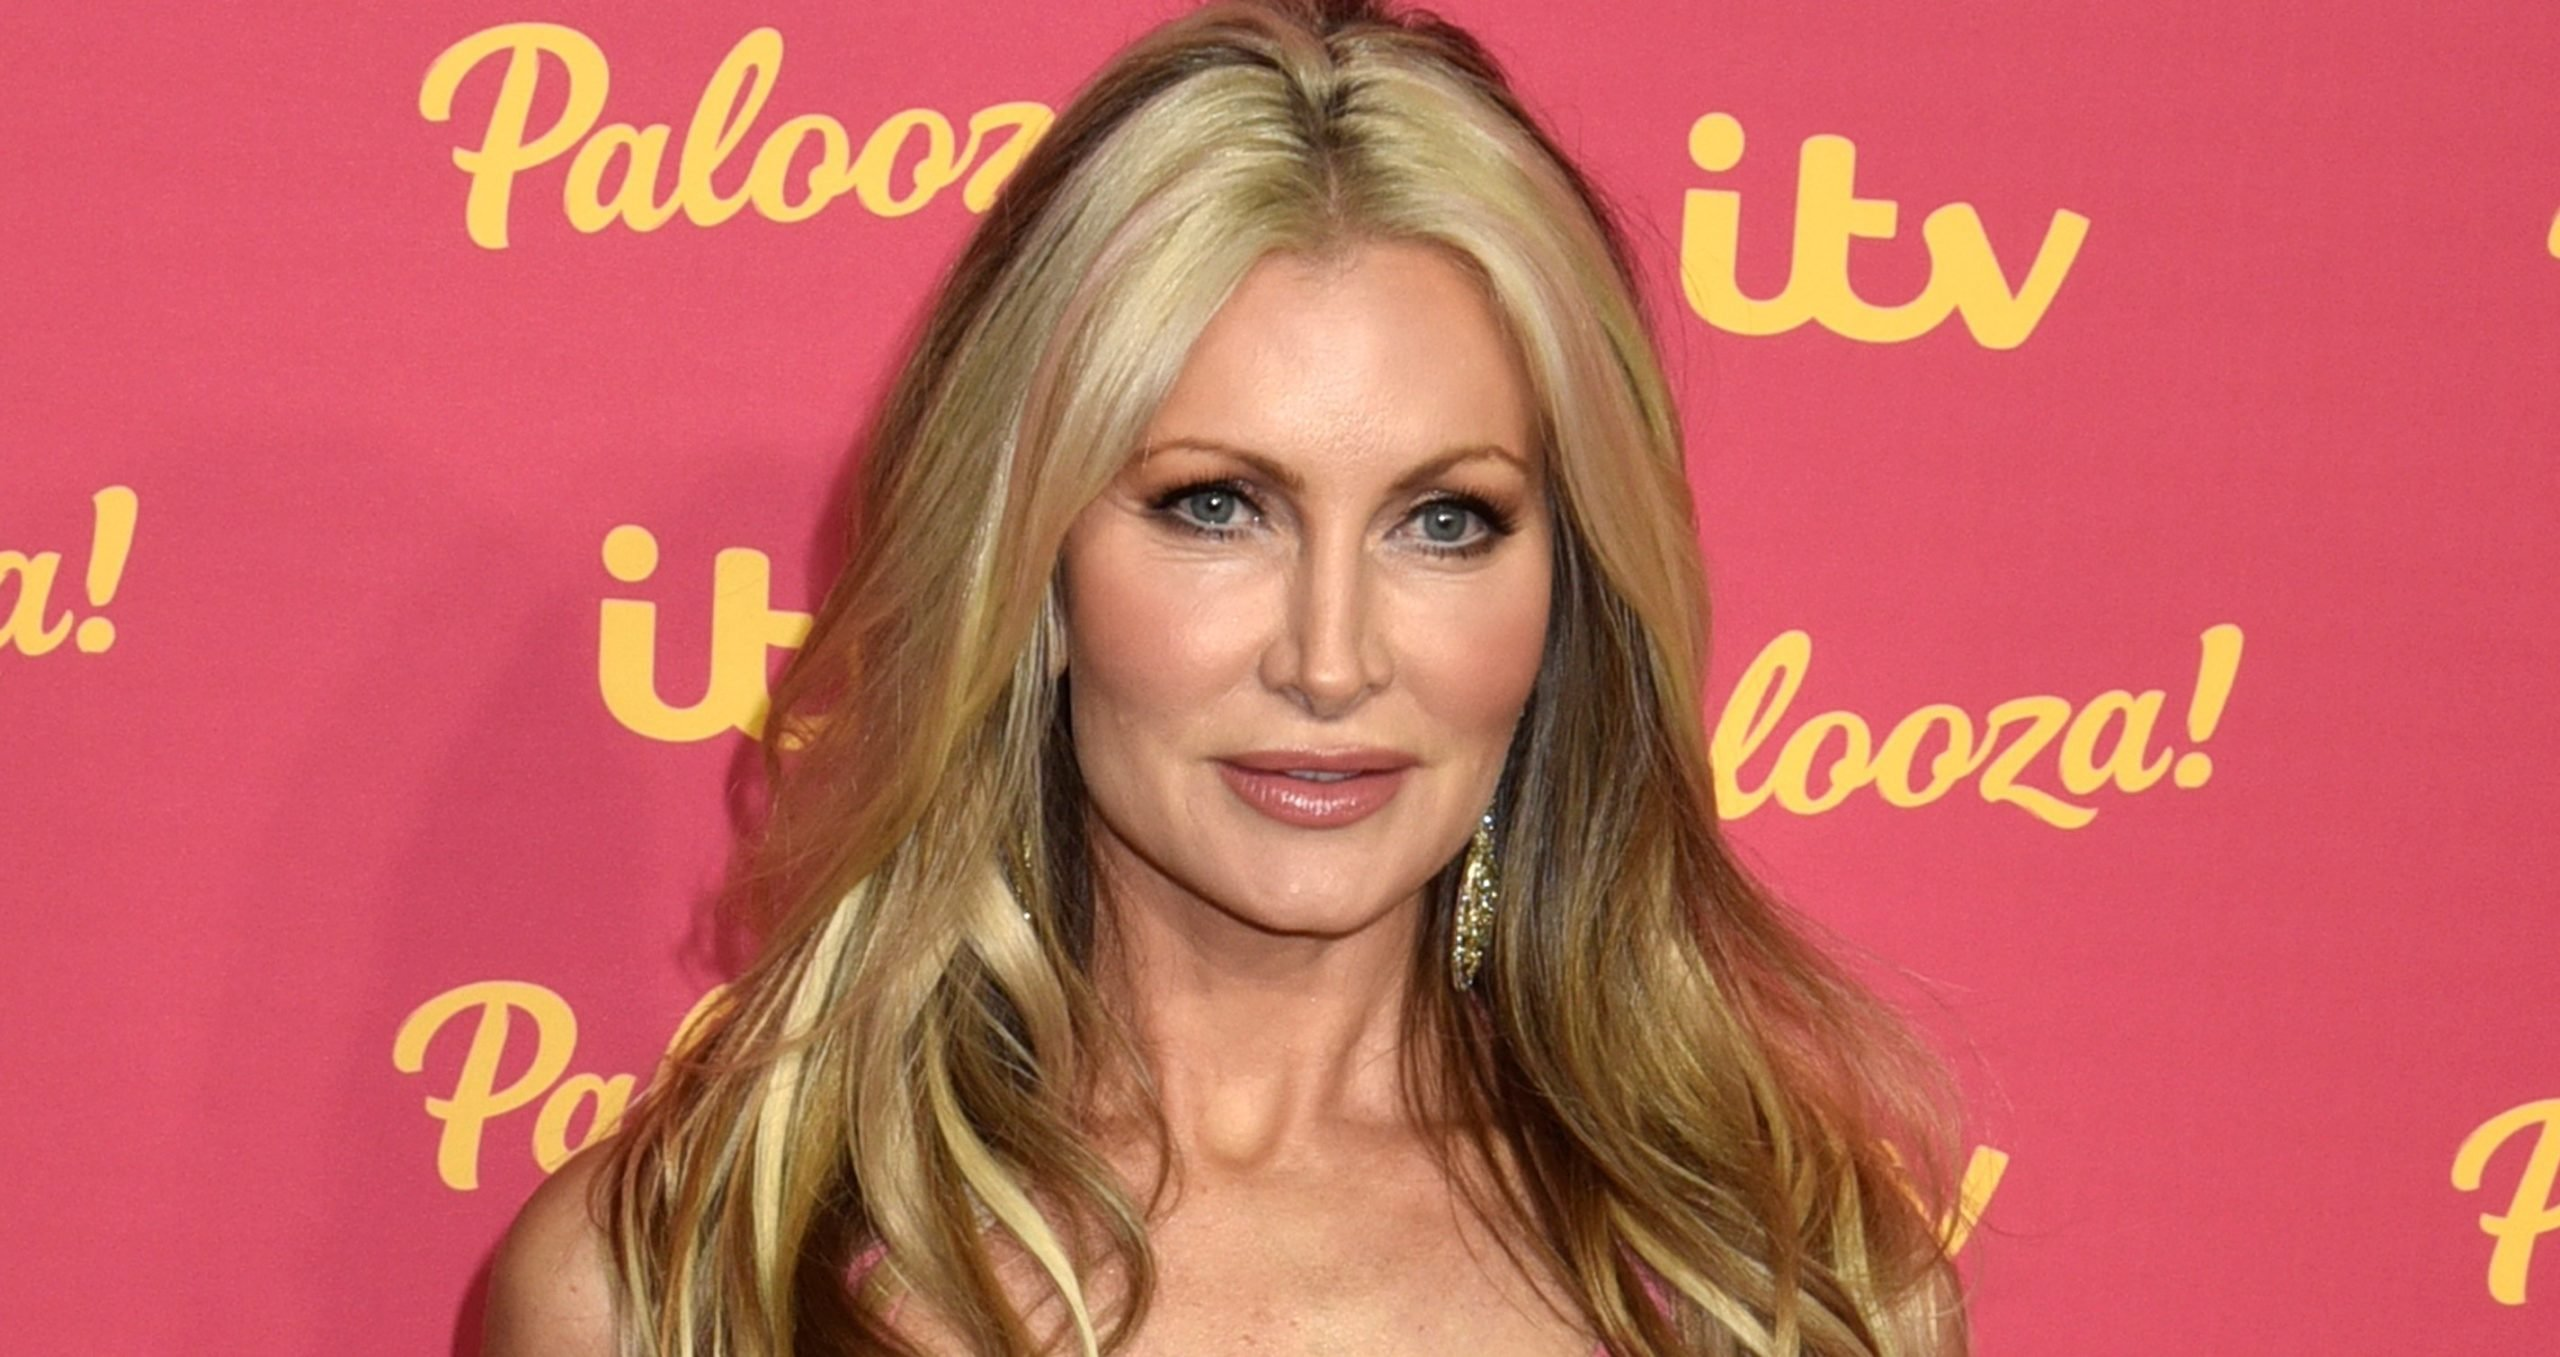 Caprice Bourret slams ITV for showing 'no duty of care' towards her